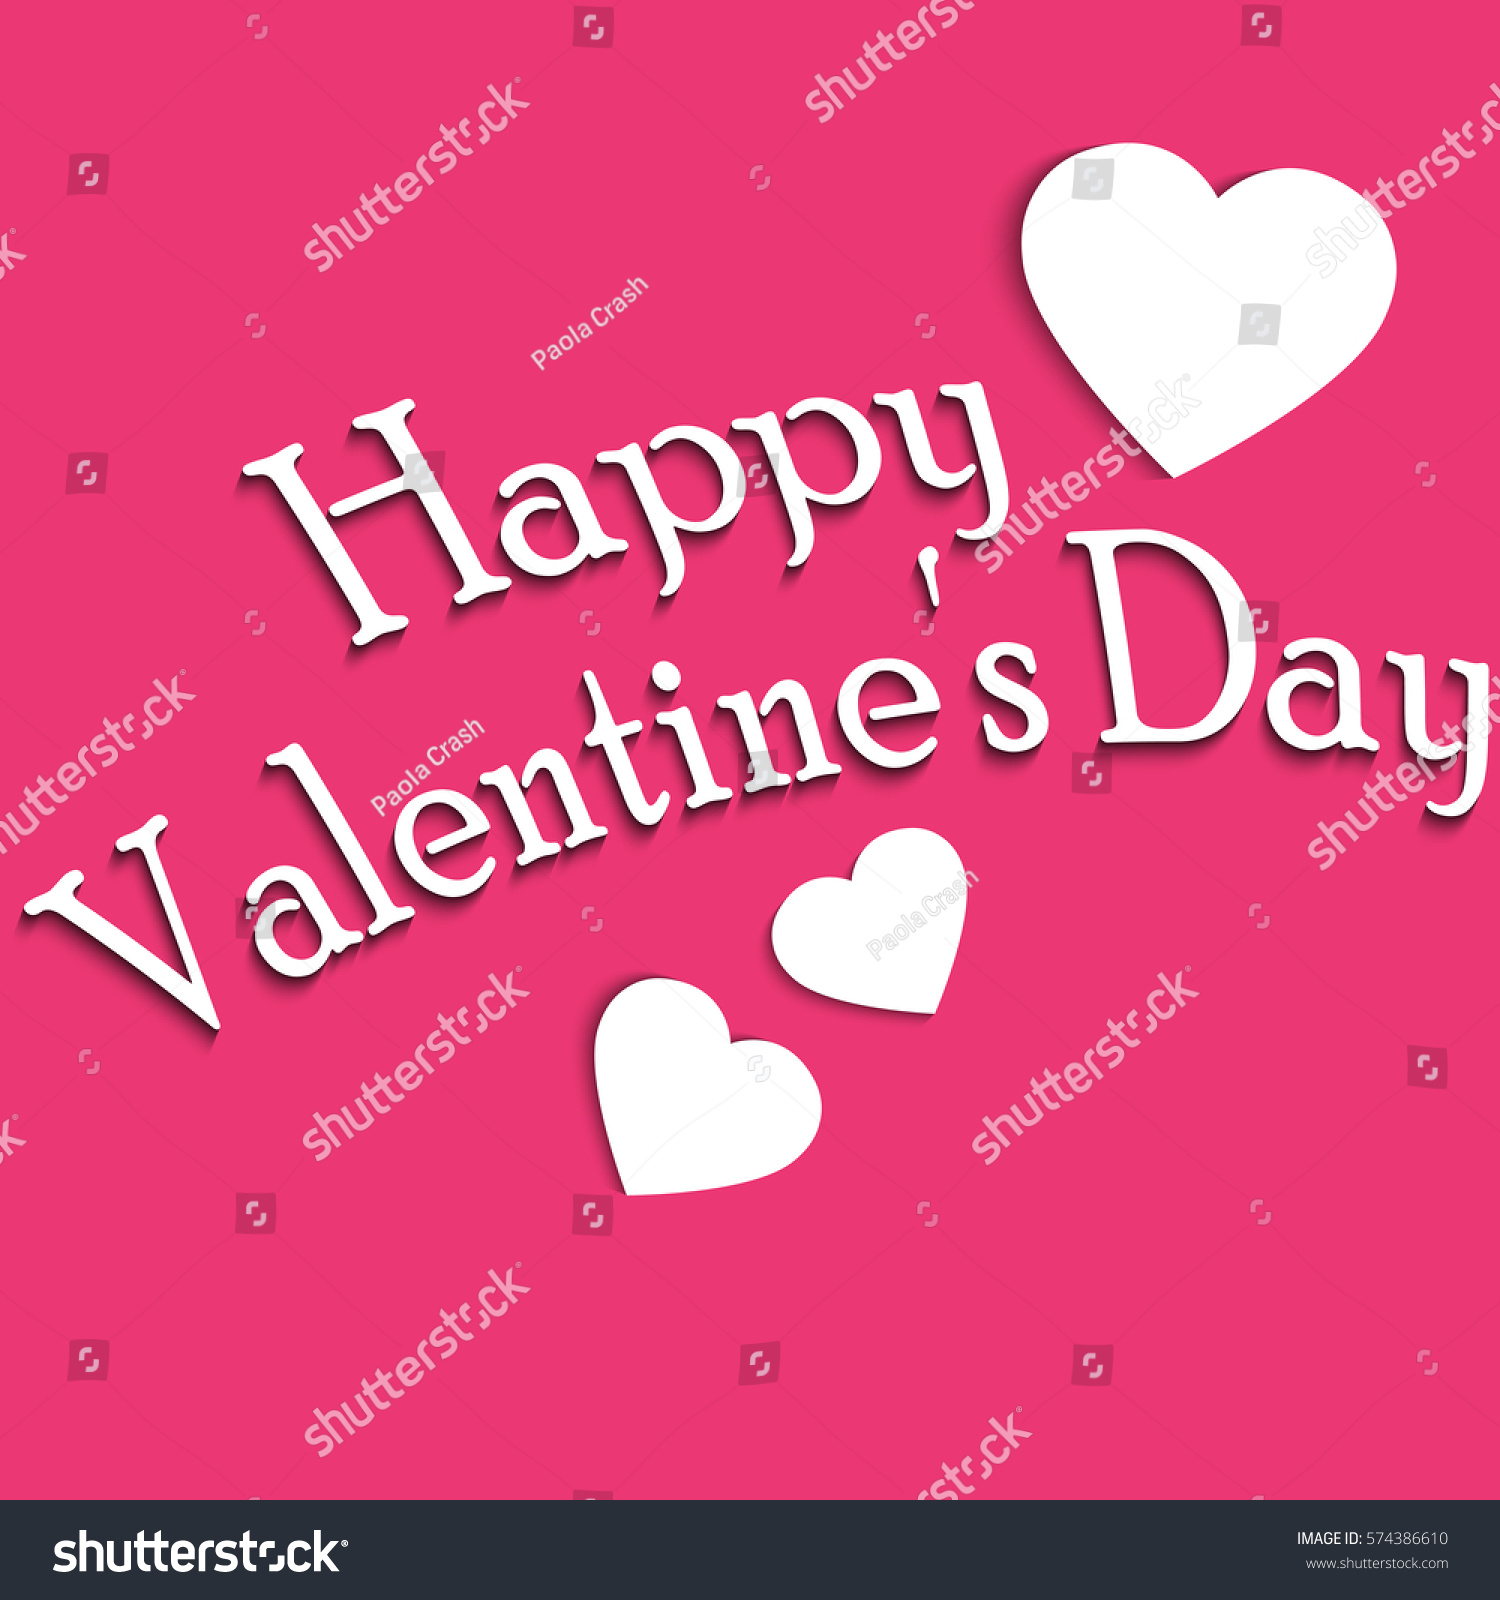 Caption greetings happy valentines day on stock illustration caption greetings happy valentines day on pink background kristyandbryce Choice Image